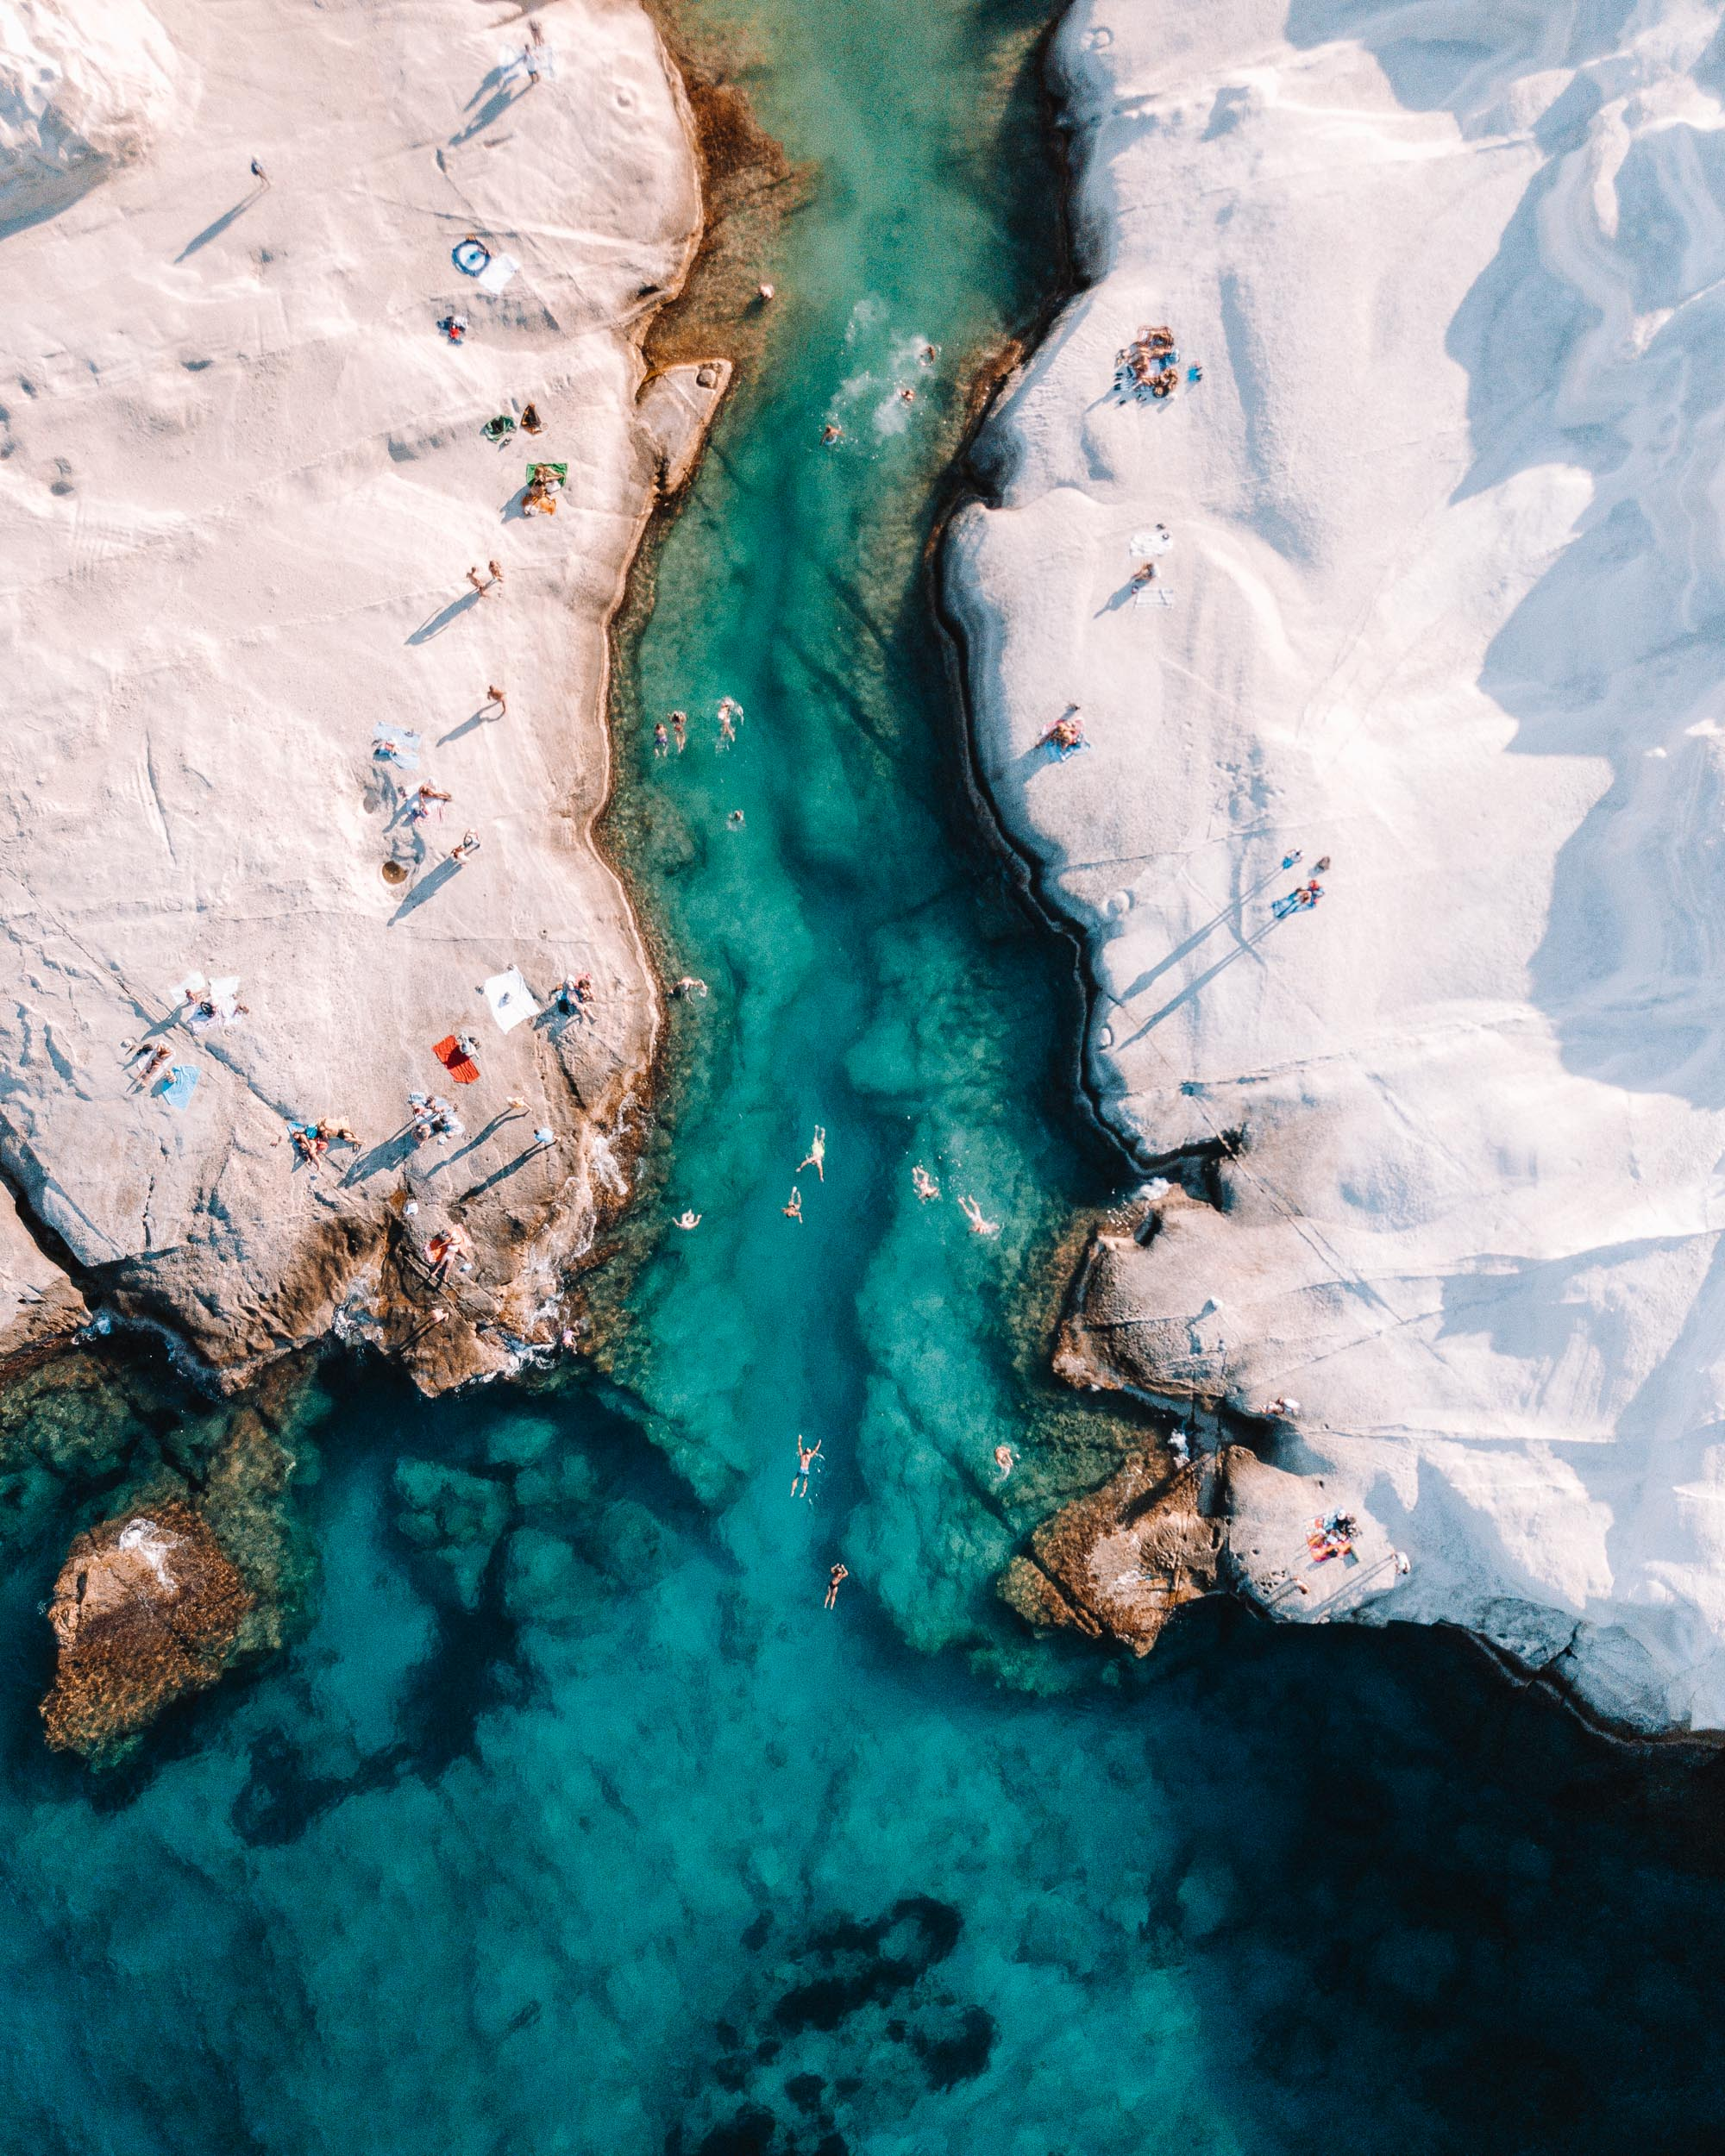 Drone shot of Sarakiniko white beach in Milos, Greek Islands via @finduslost